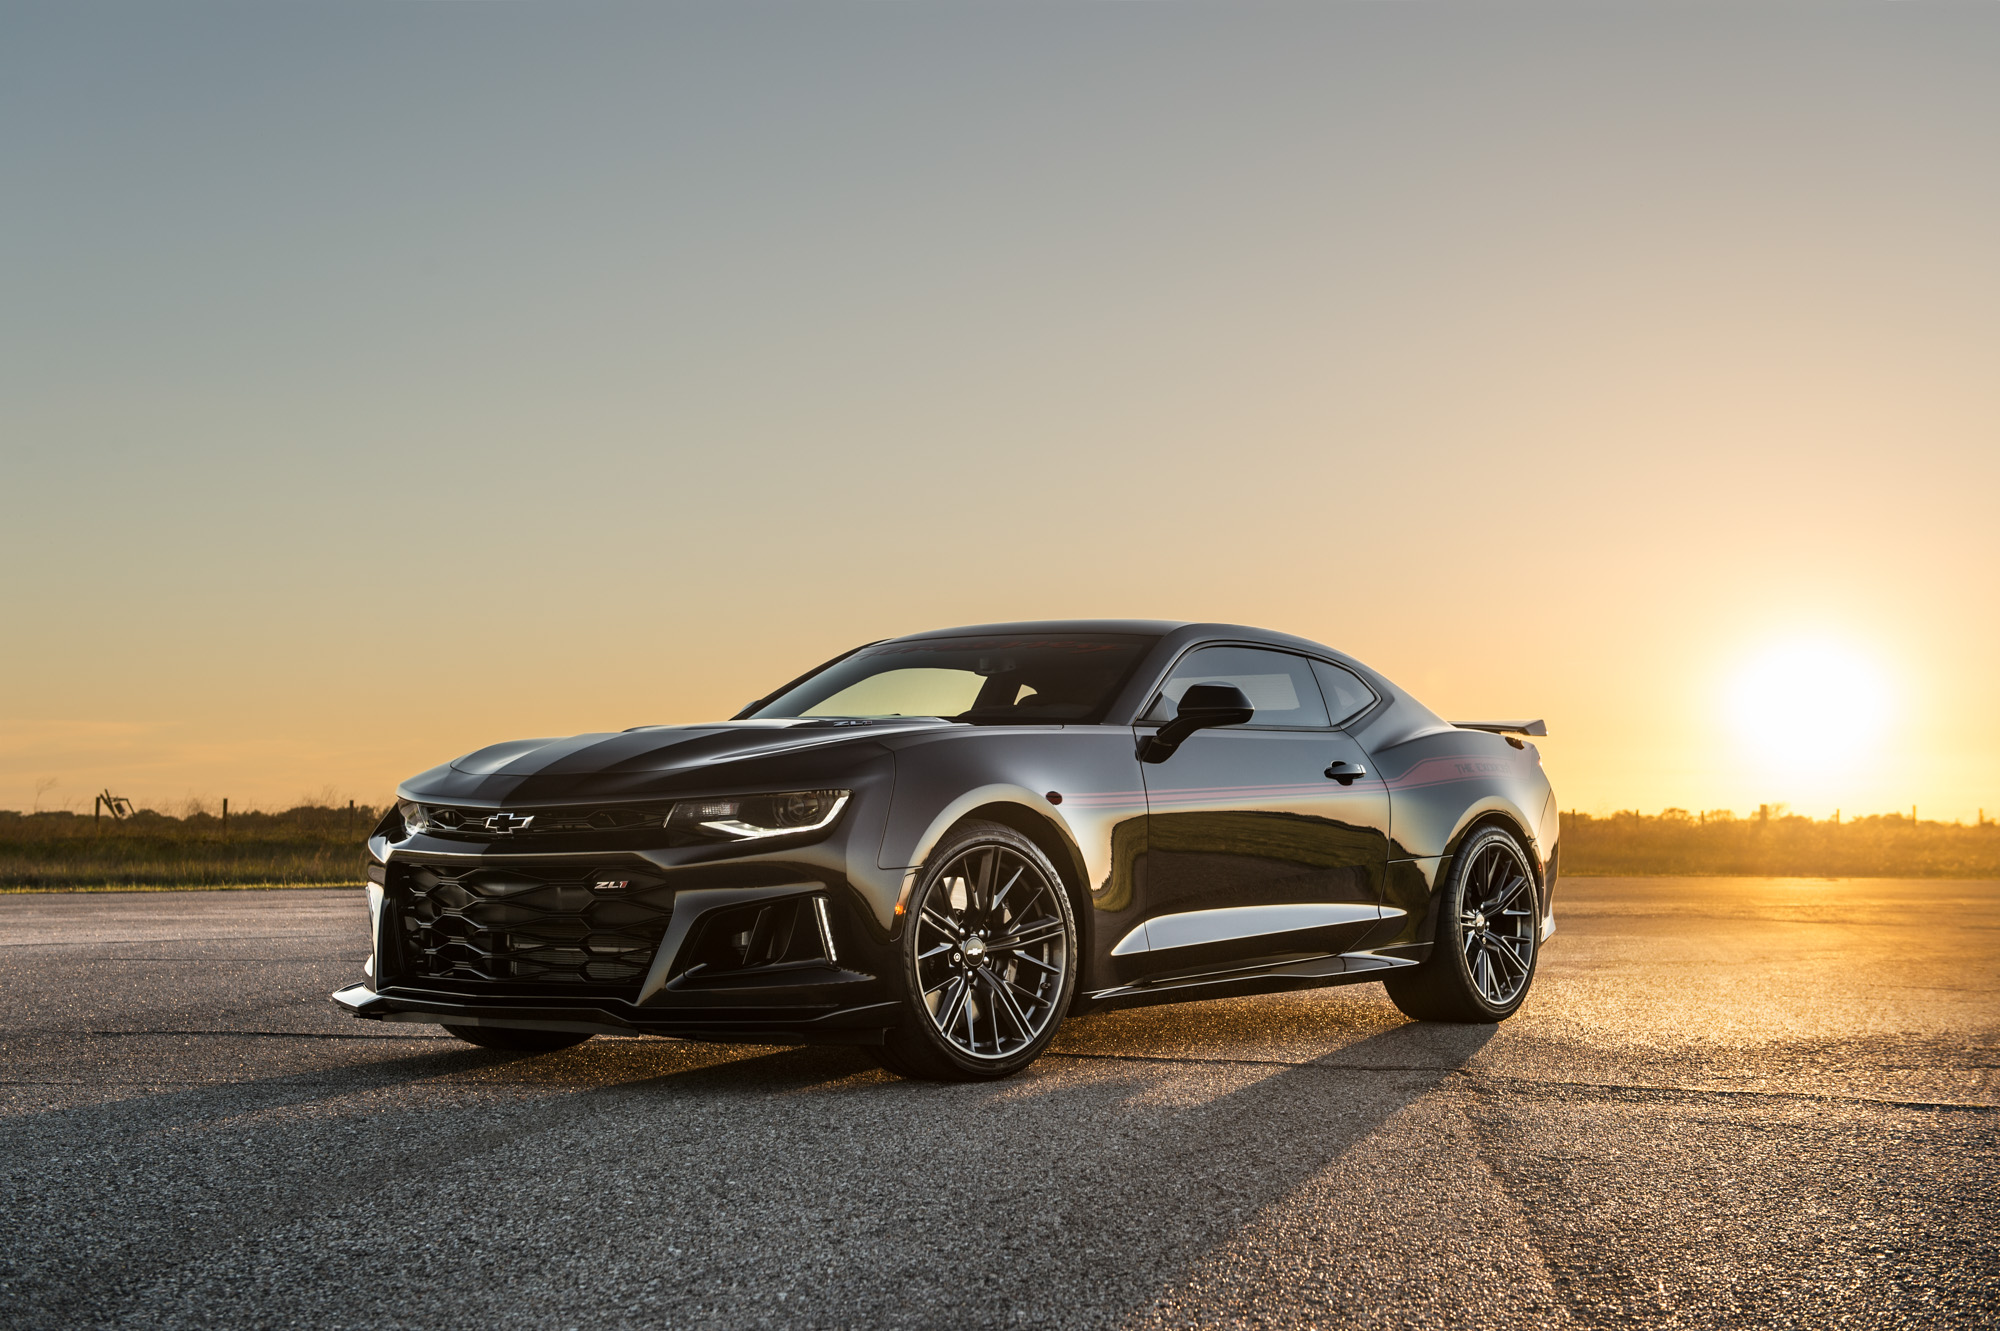 The Exorcist Hennessey Camaro ZL1 - 2017 - front side face